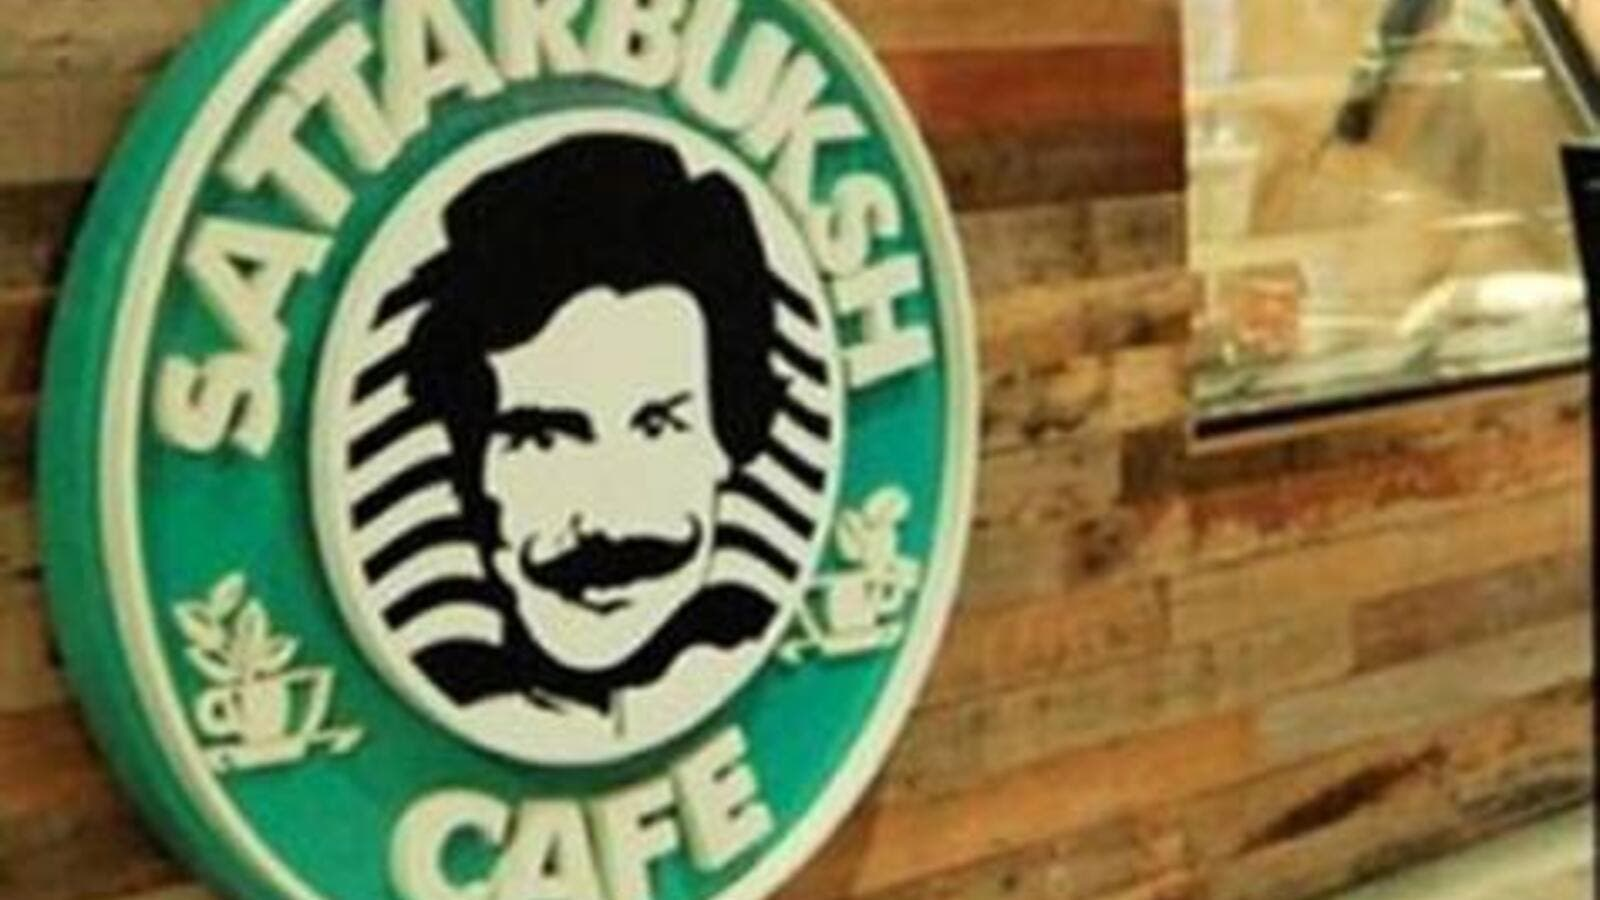 The black, twisted moustache - a symbol of command and power of manhood in this region - replaces the siren with her crown in the original Starbucks logo. Even the name Sattar Buksh sounds similar to that of the global coffee giant. [gulfnews.com]